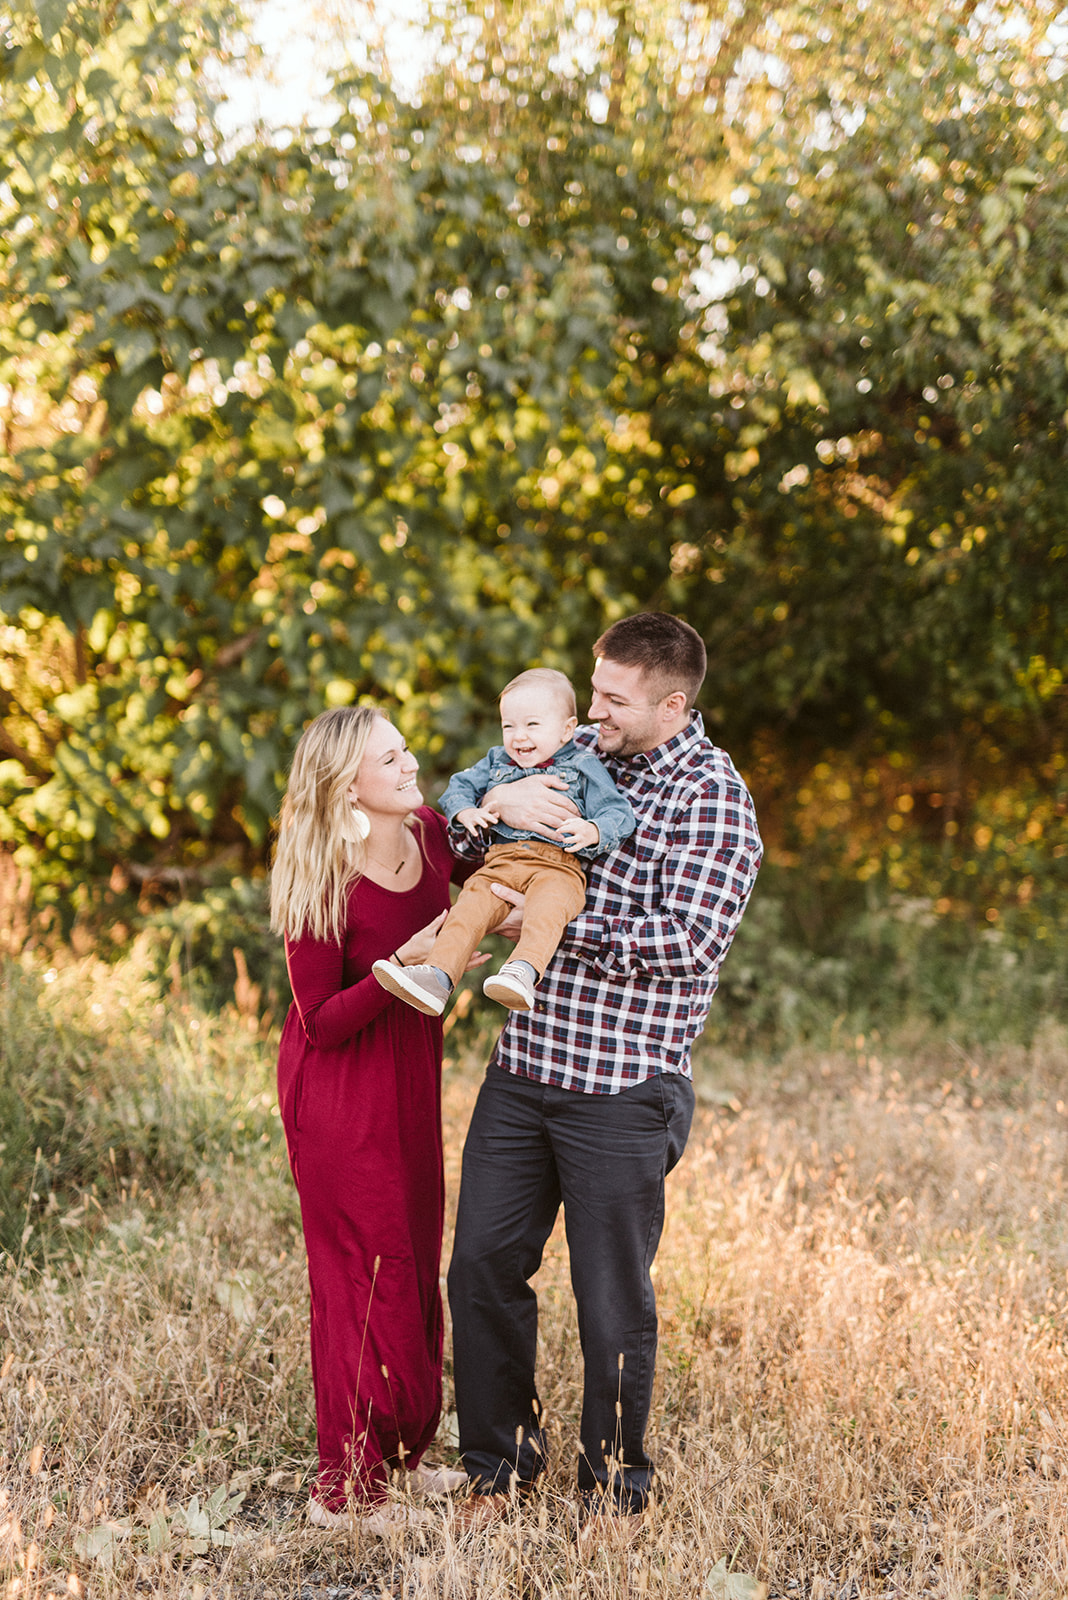 Sunset family session at Lancaster County Central Park.